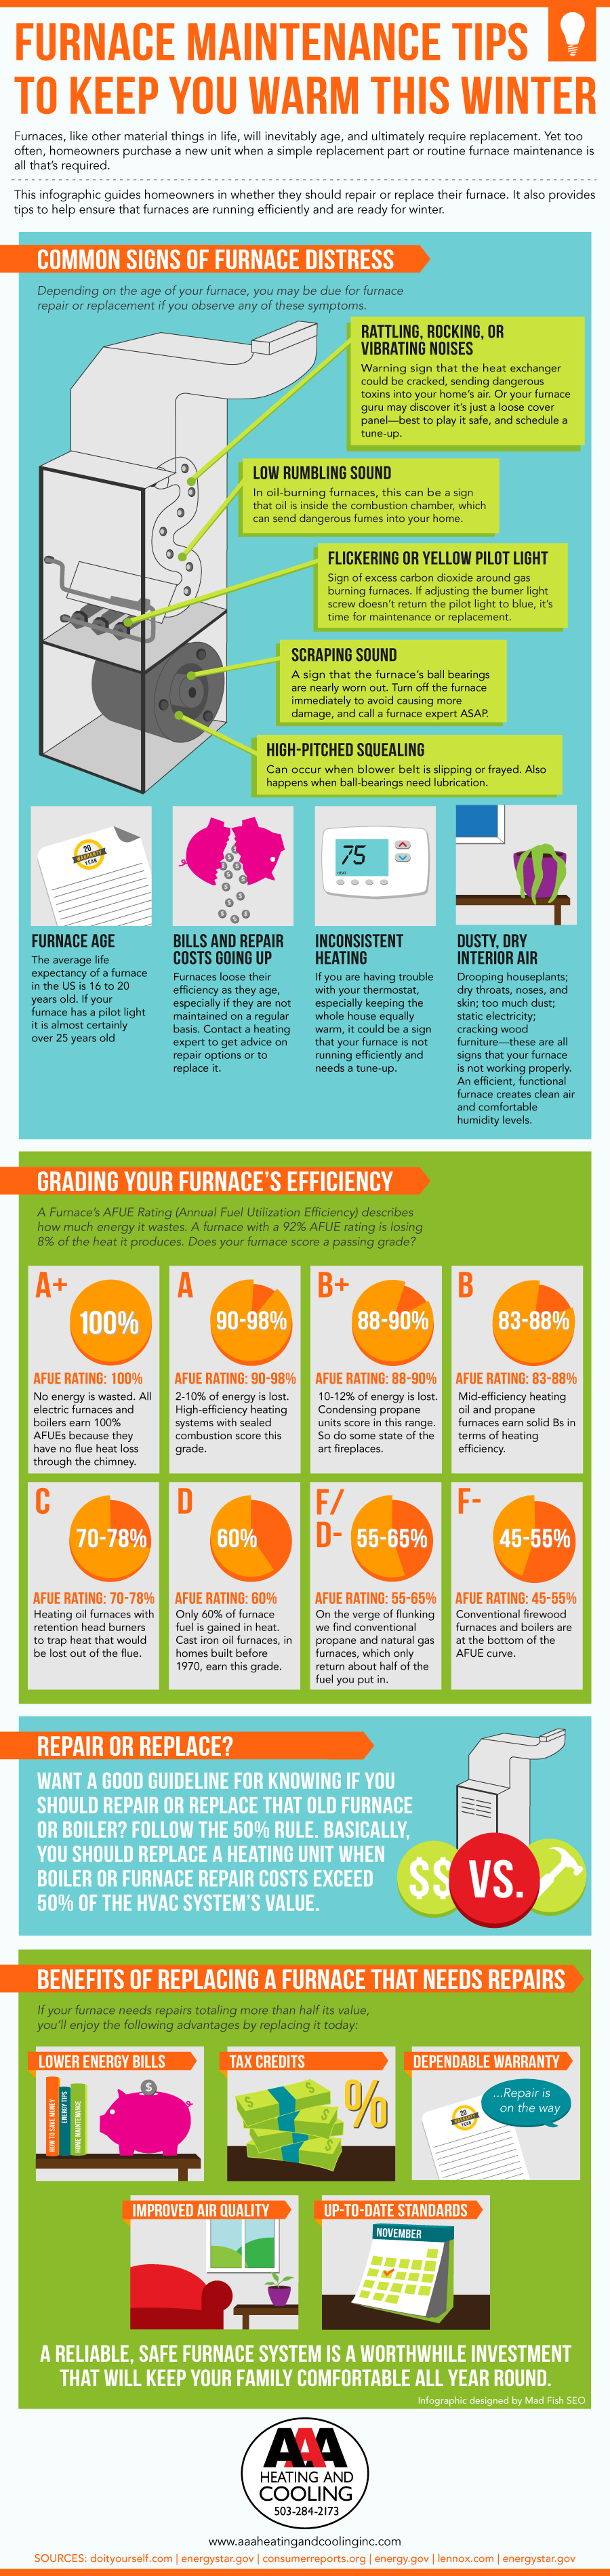 furnace maintenance infographic